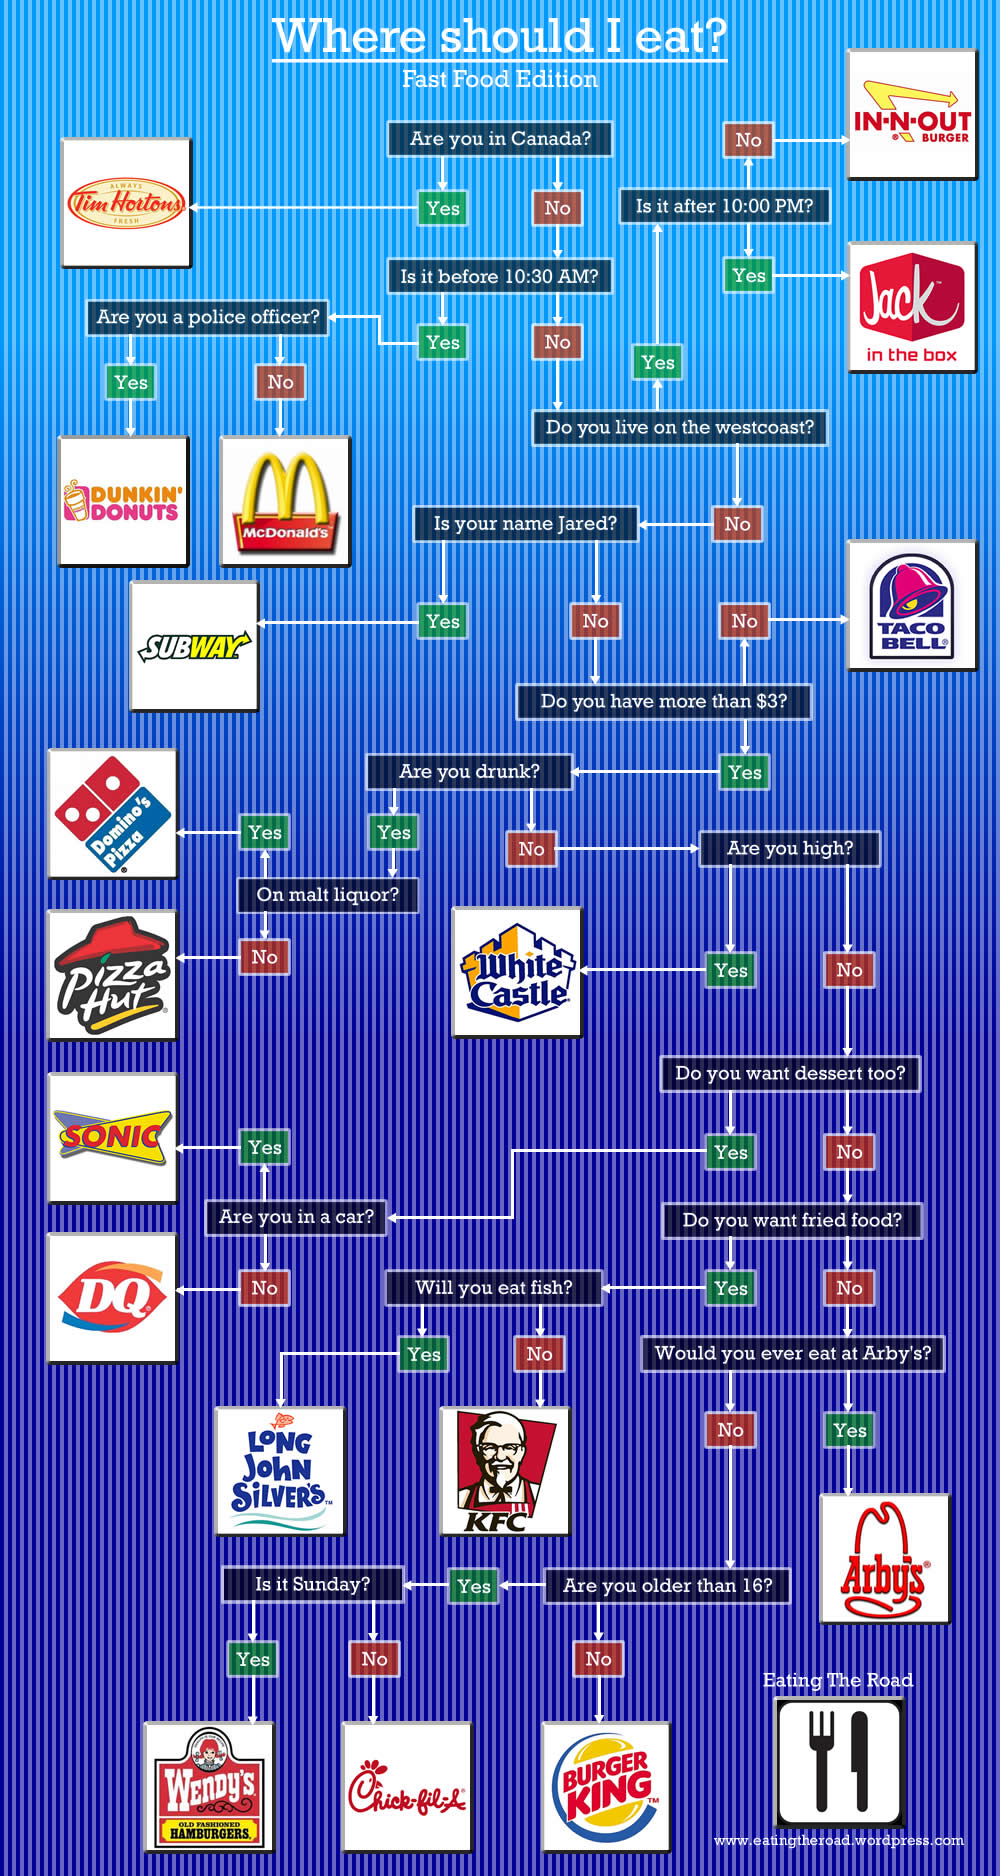 What Should I Do With My Soil: Where Should I Eat? Fast Food Edition